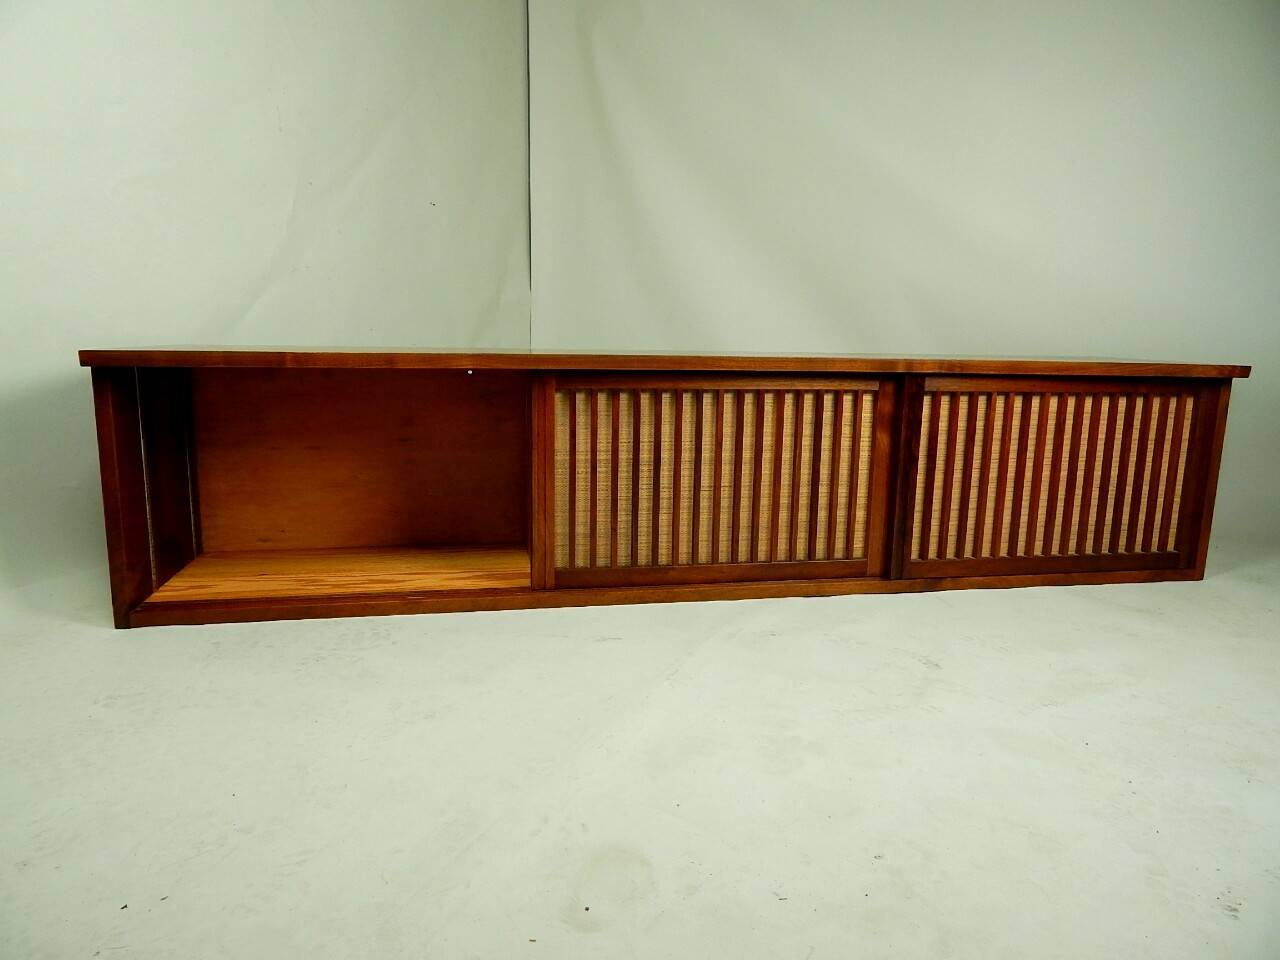 20th Century Walnut Wall Cabinet by George Nakashima For Sale 2